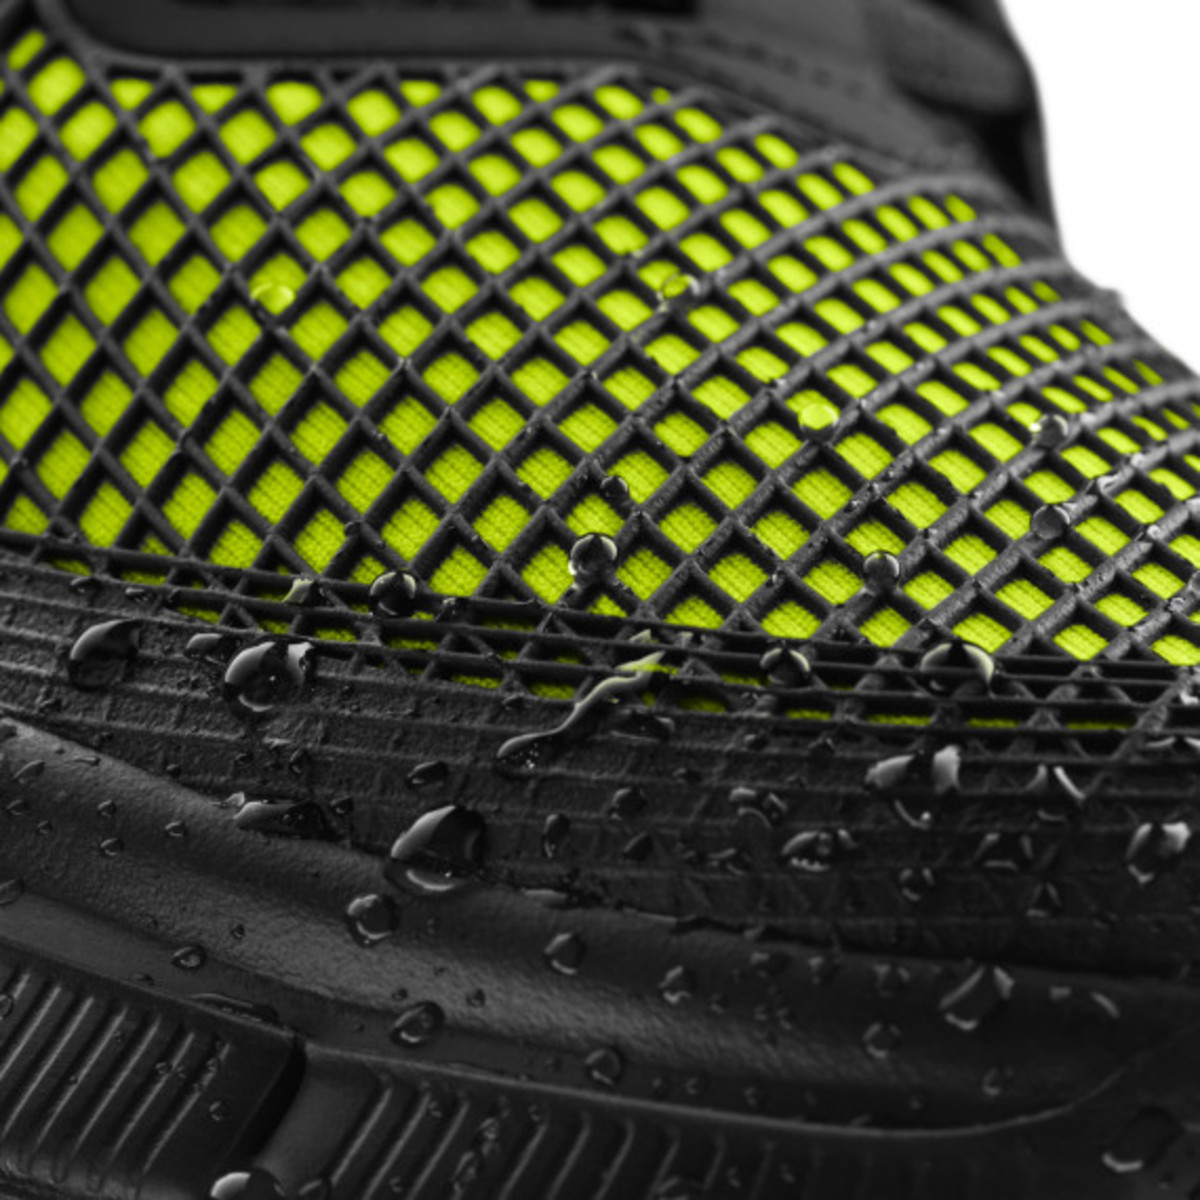 Nike Free Trainer 3.0 Mid Shield - Officially Unveiled - 6